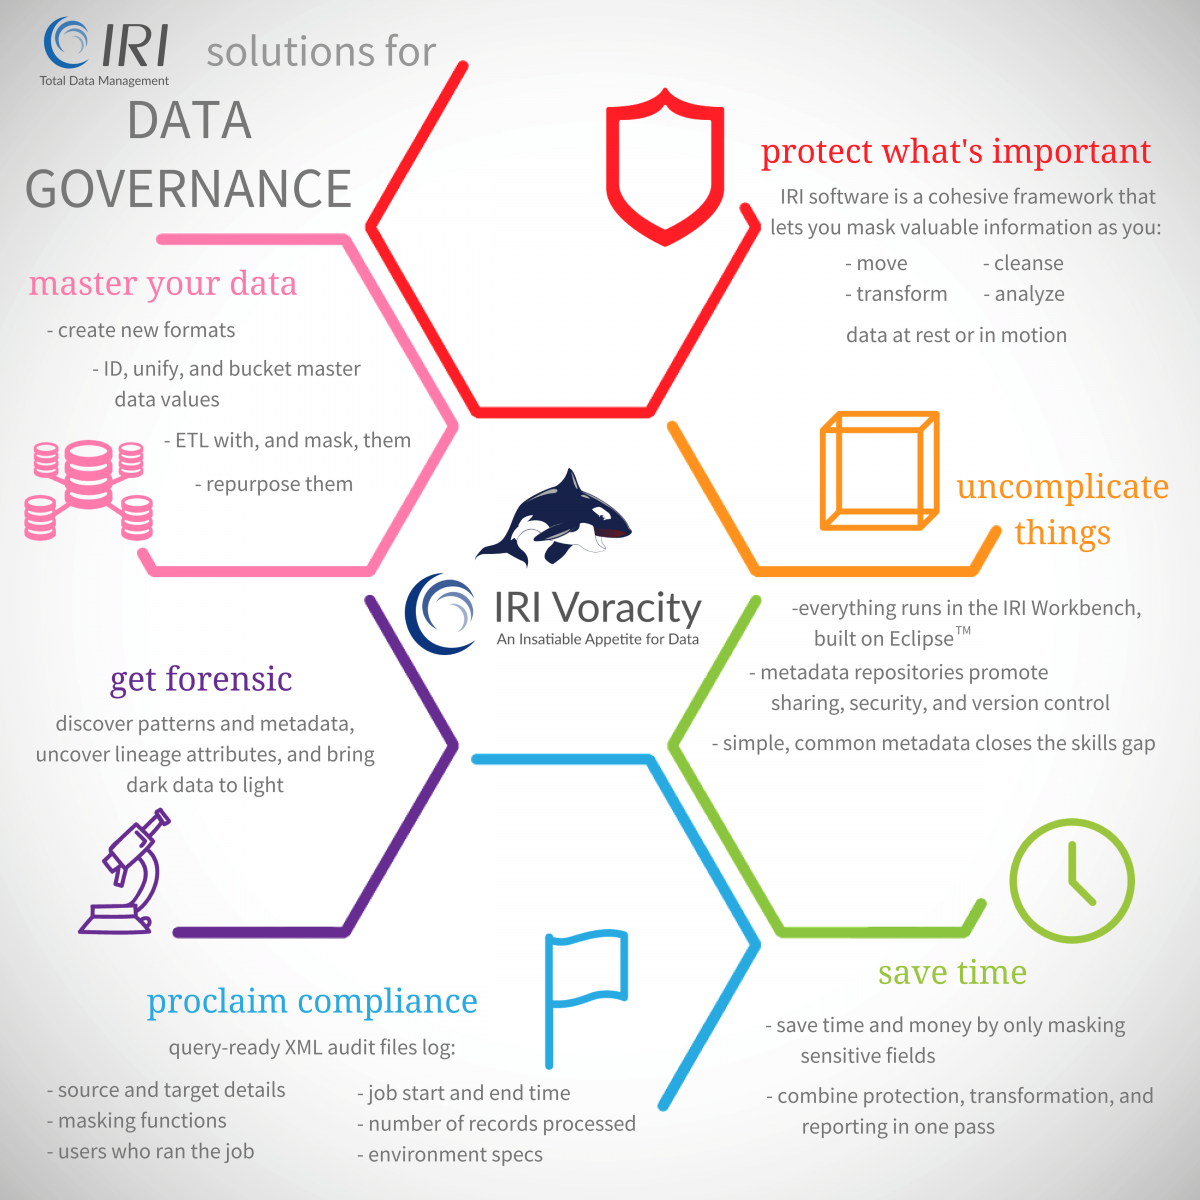 Data Governance Solutions from IRI